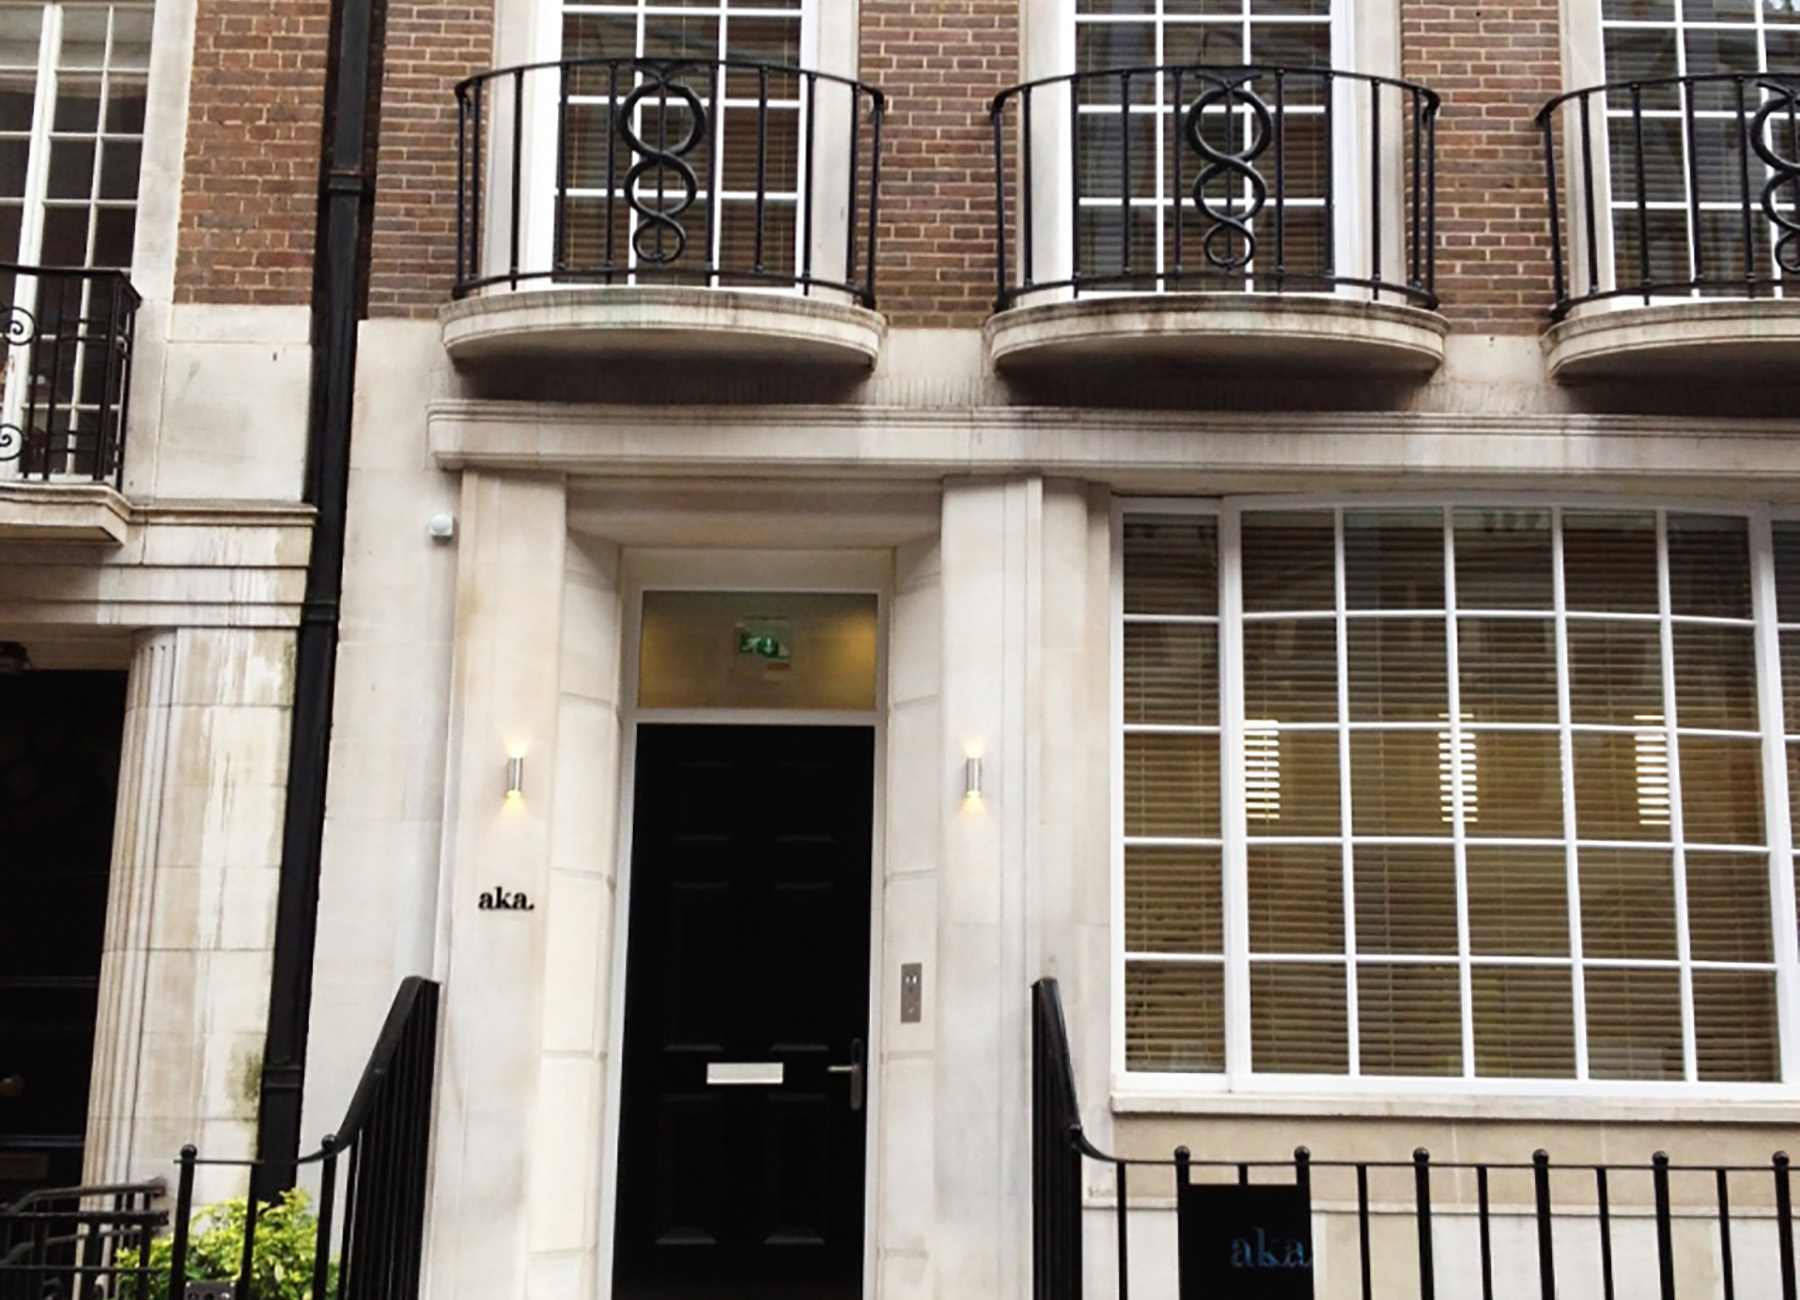 Entrance to Marylebone townhouse with brick and stone facade